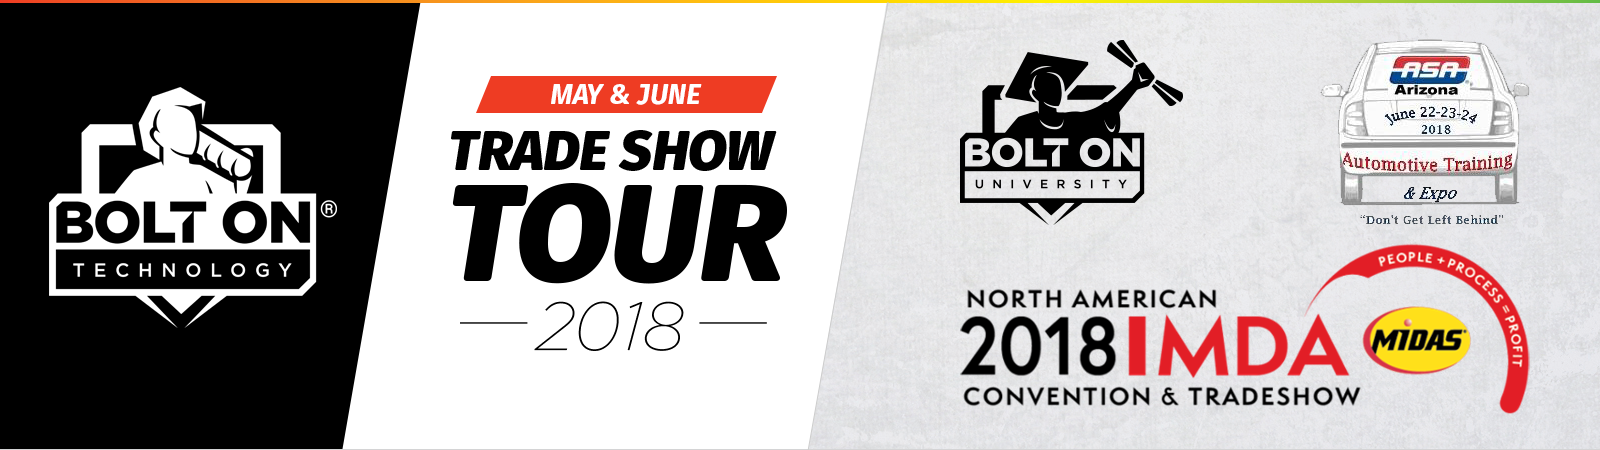 May & June Trade Show Tour